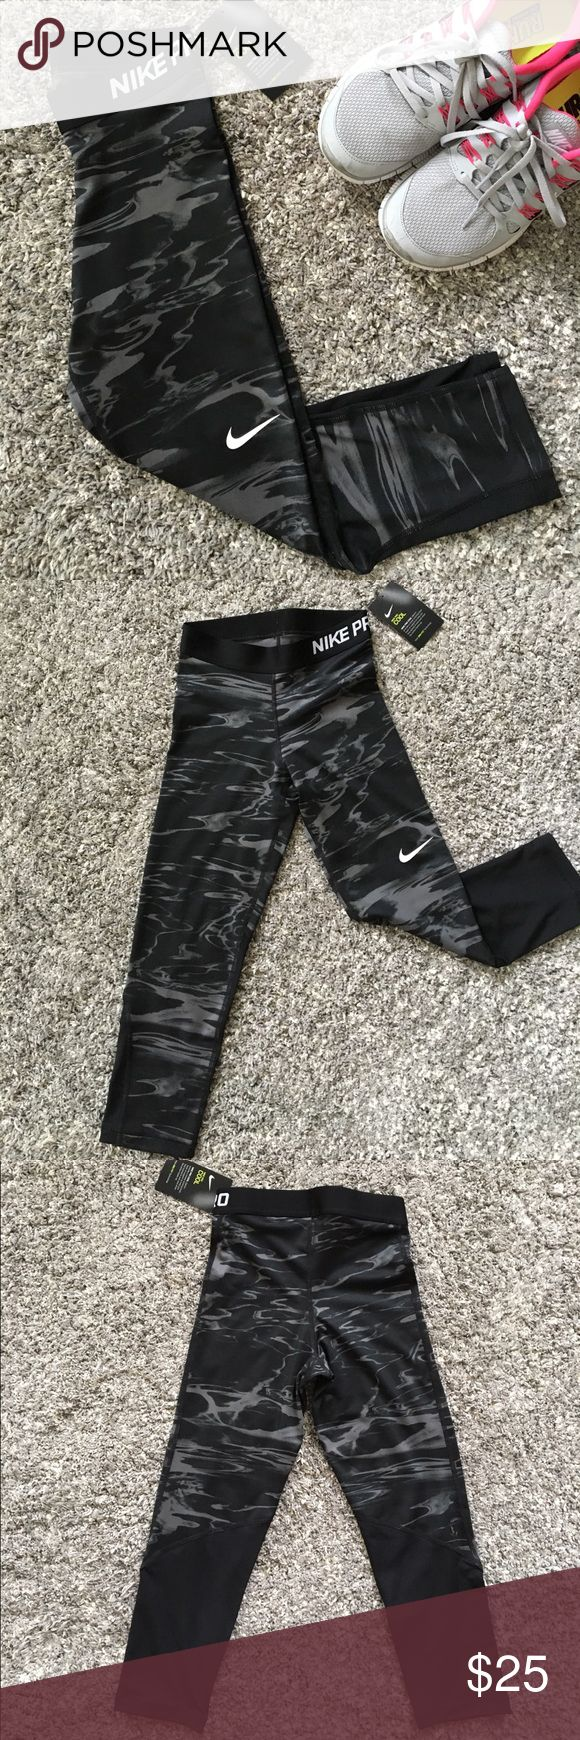 Nike Pro Training Capris Black and Gray Brand new Nike Pro Training Capris Black and Gray. Mesh panels below the knee in the back for breathability. Size XS. Ships fast! Nike Pants Leggings